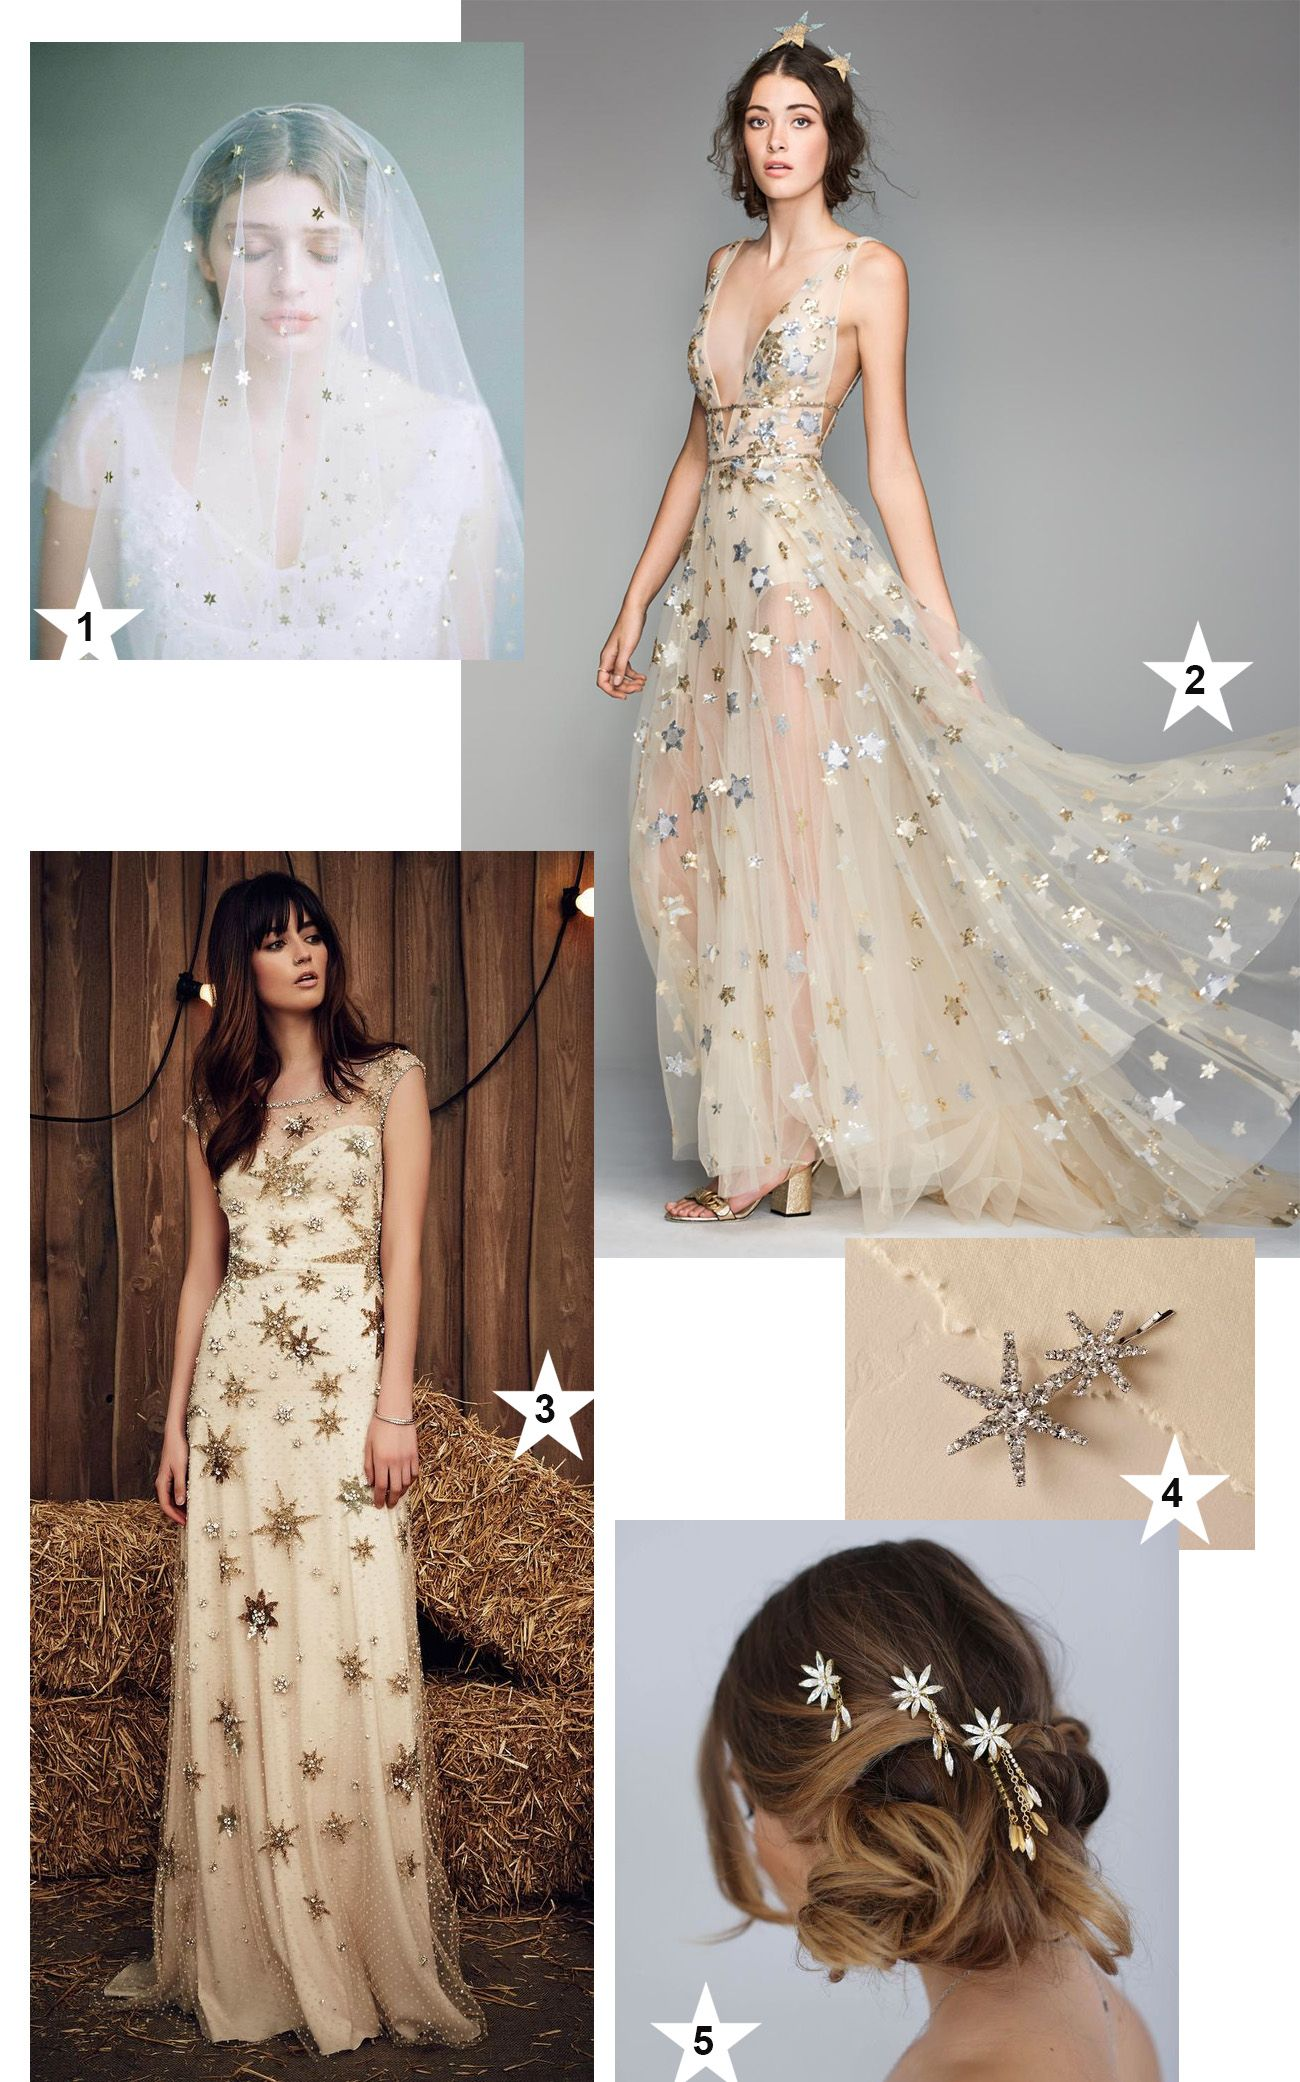 c69510c3280d Trending Now: Seeing Stars! | WEDDING DRESS IDEAS + INSPIRATION ...